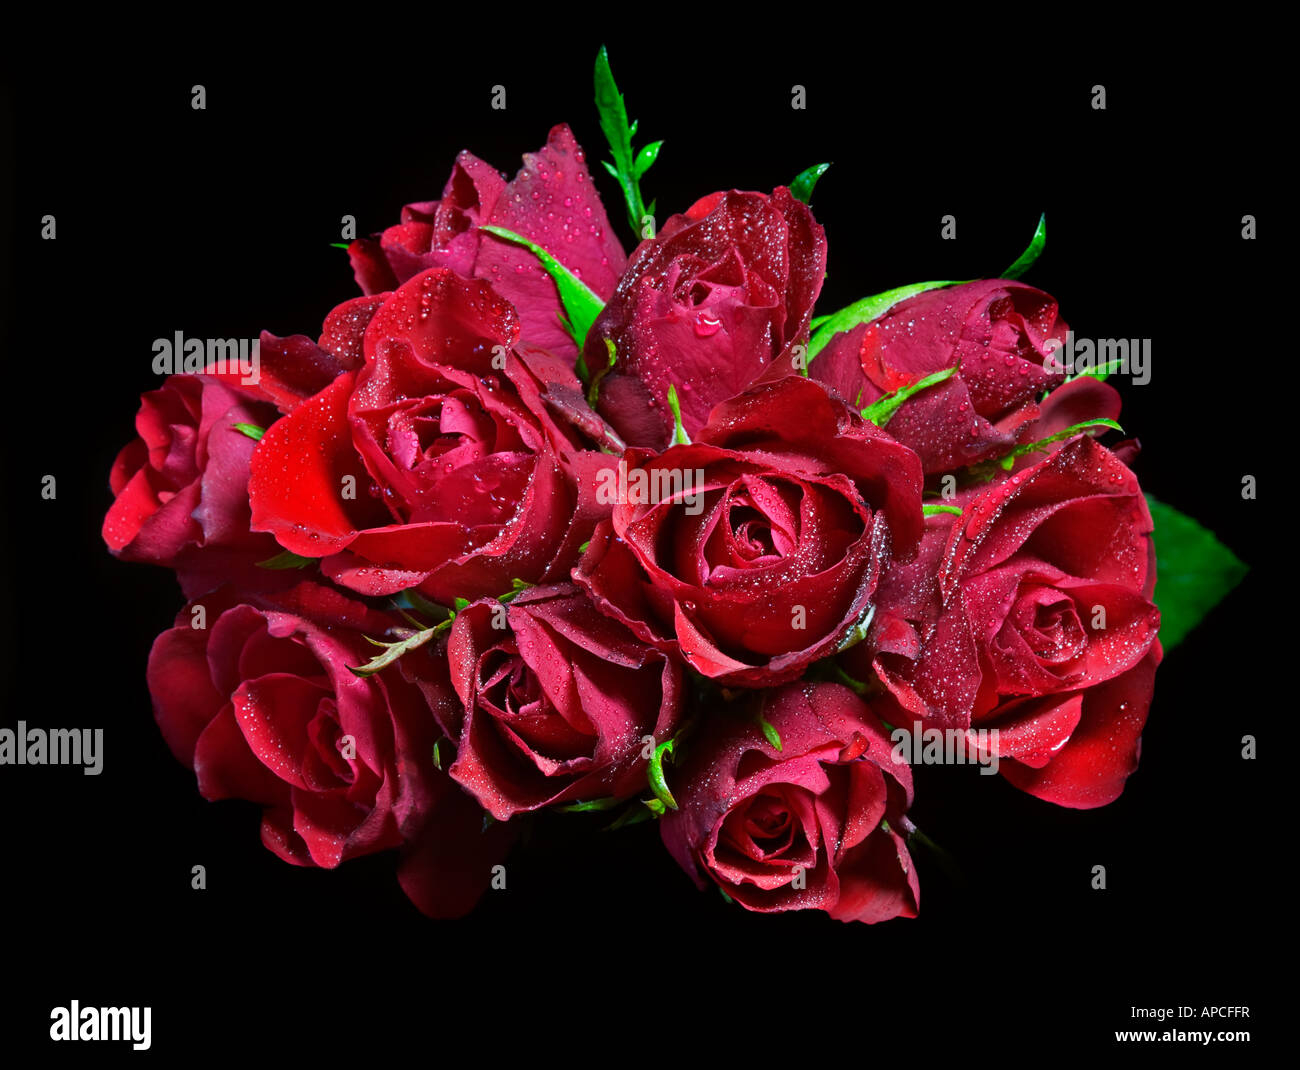 Posey of Red Roses - Stock Image